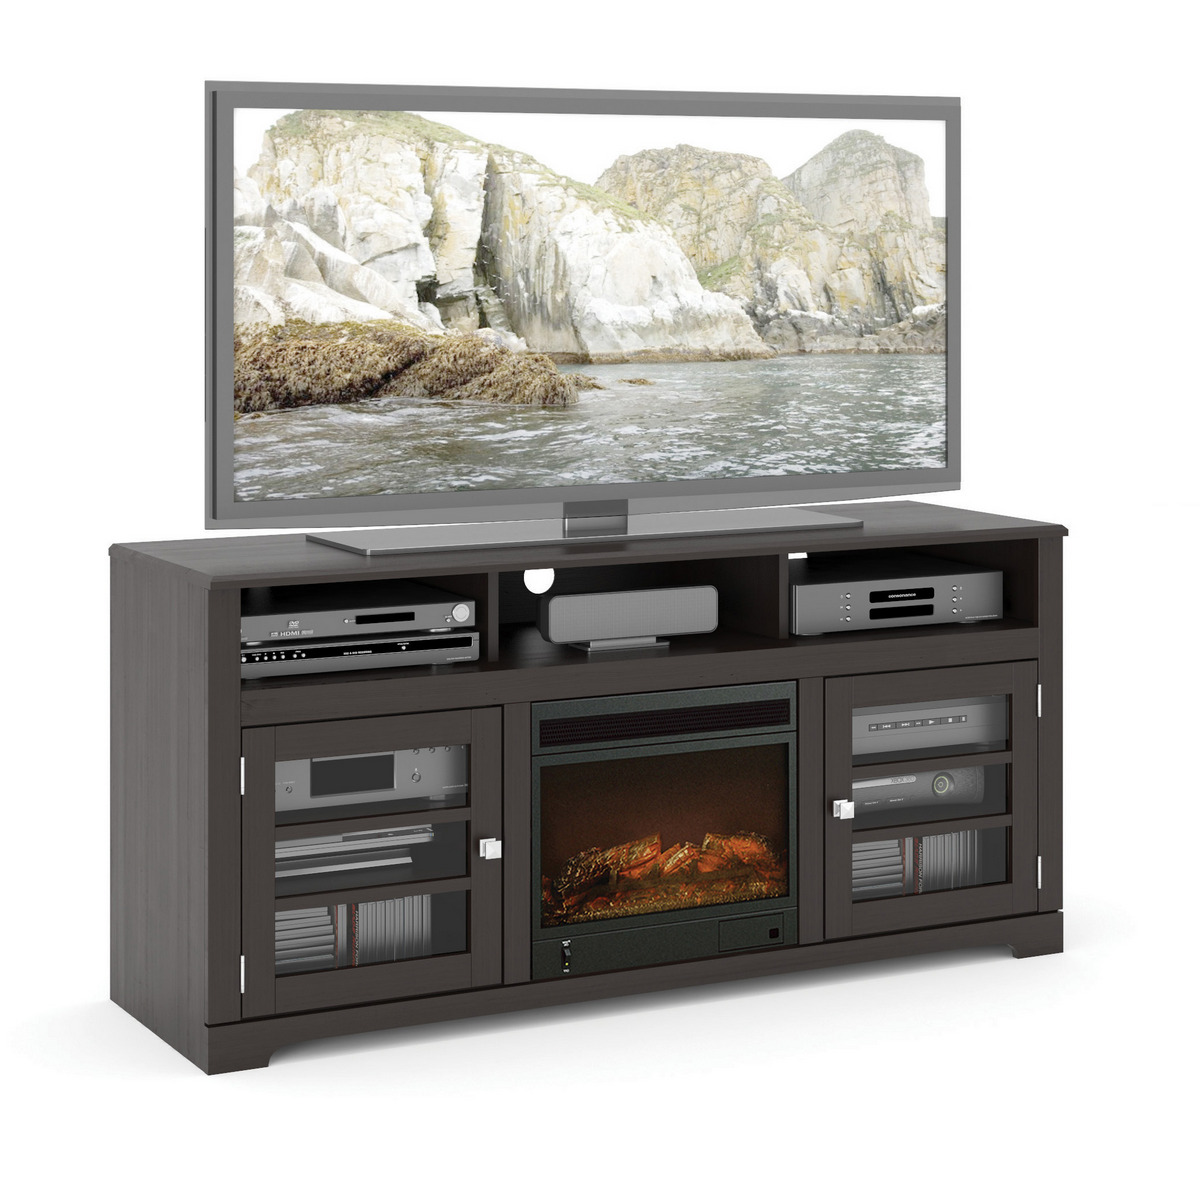 Corliving Twb West Fireplace Tv Bench Mocha Black For Up To Tvs